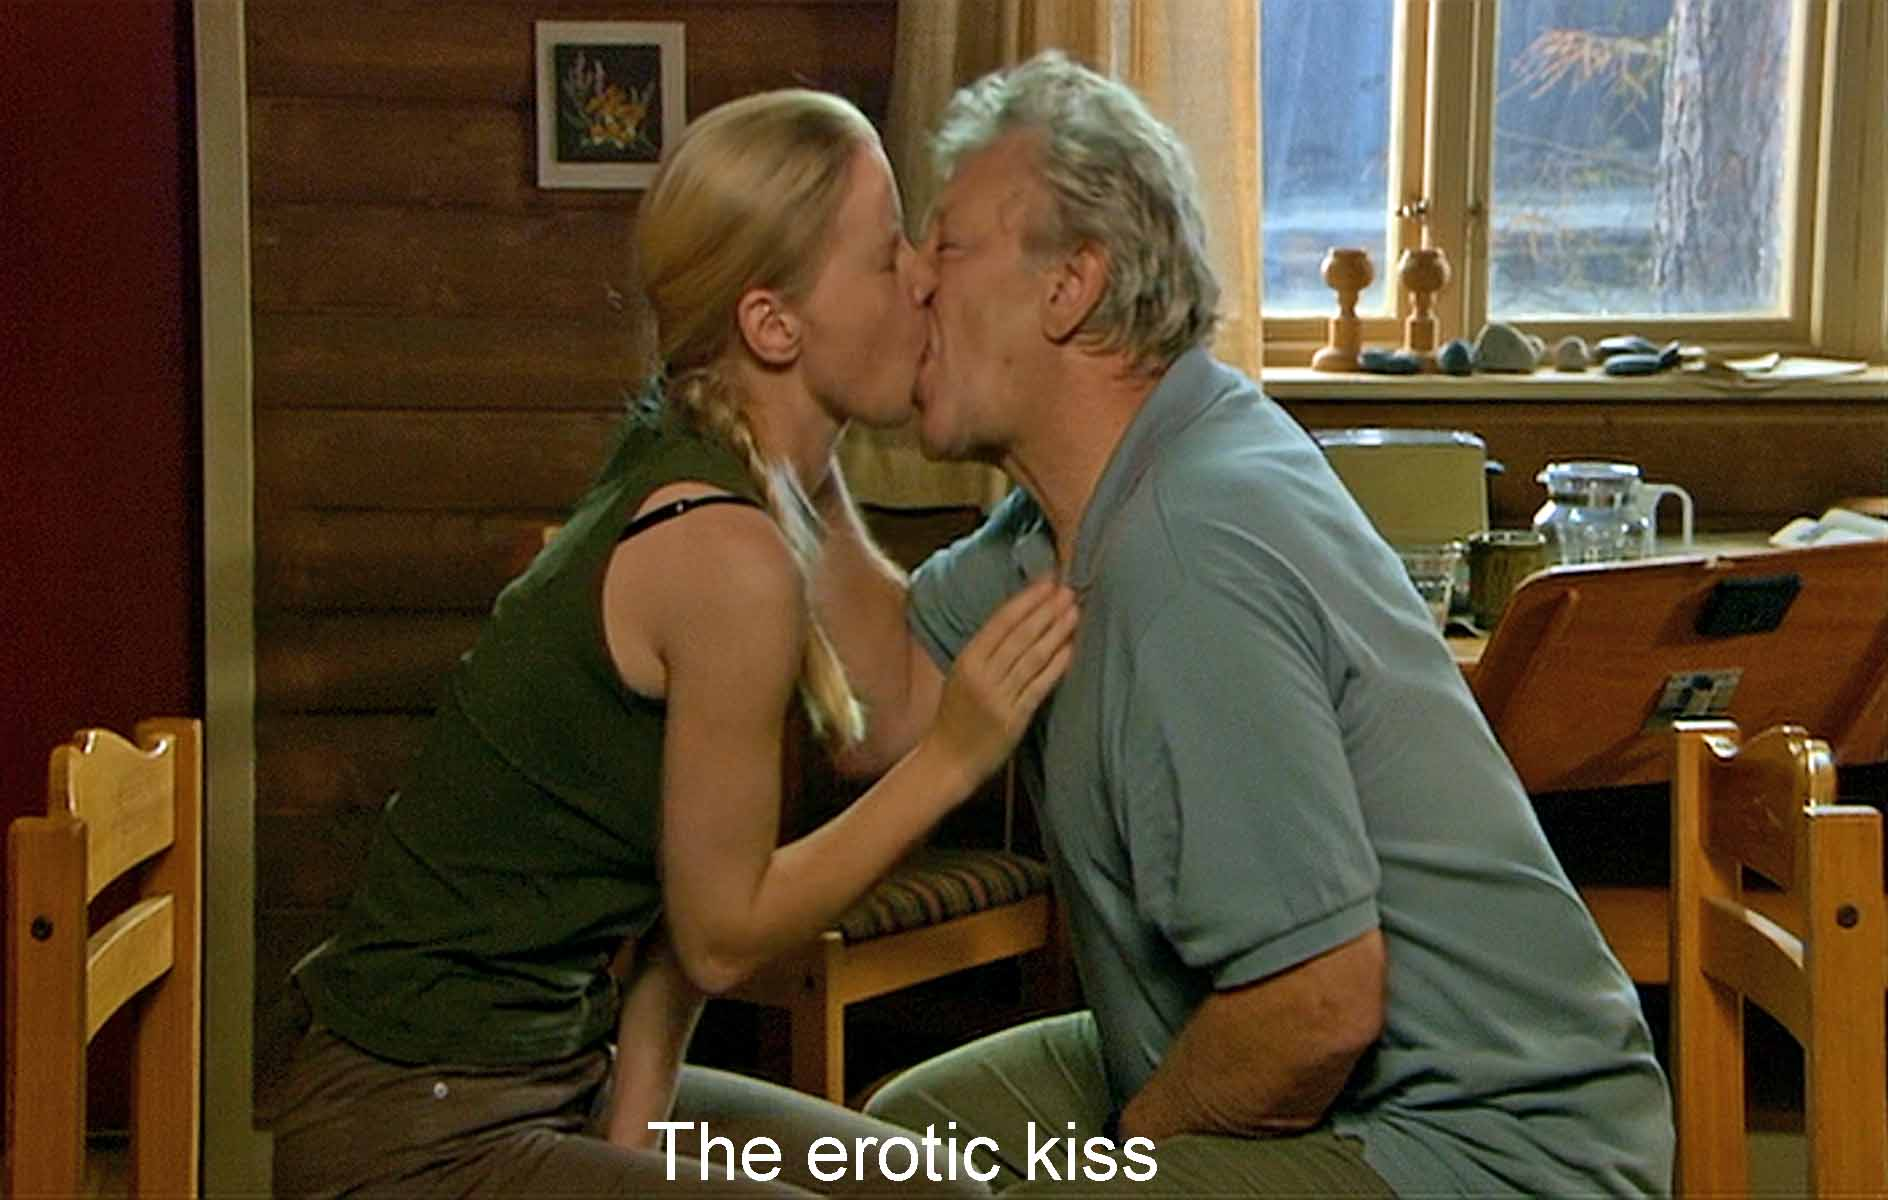 The erotic kiss